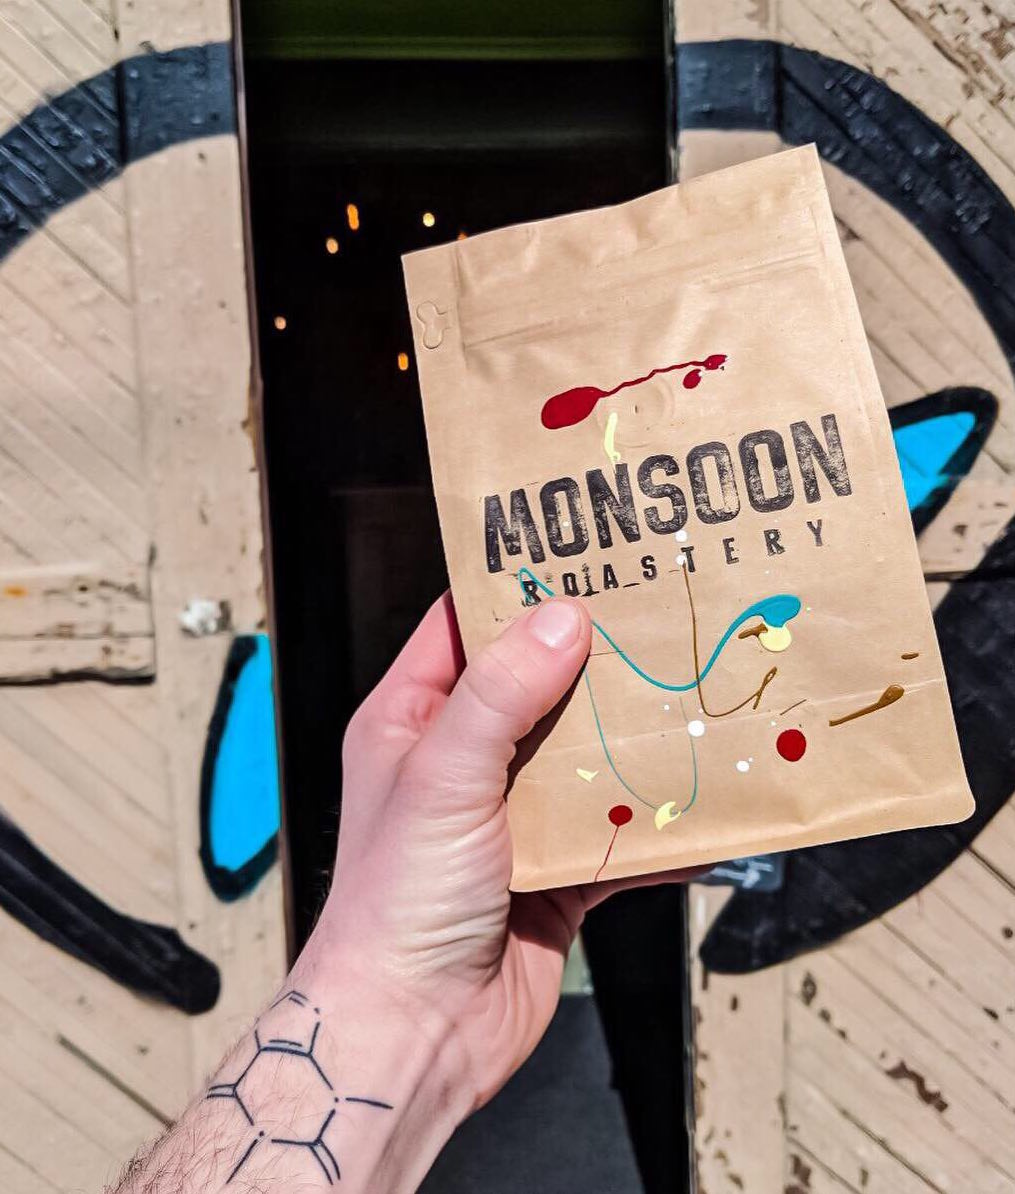 Monsoon_coffee_Springfield